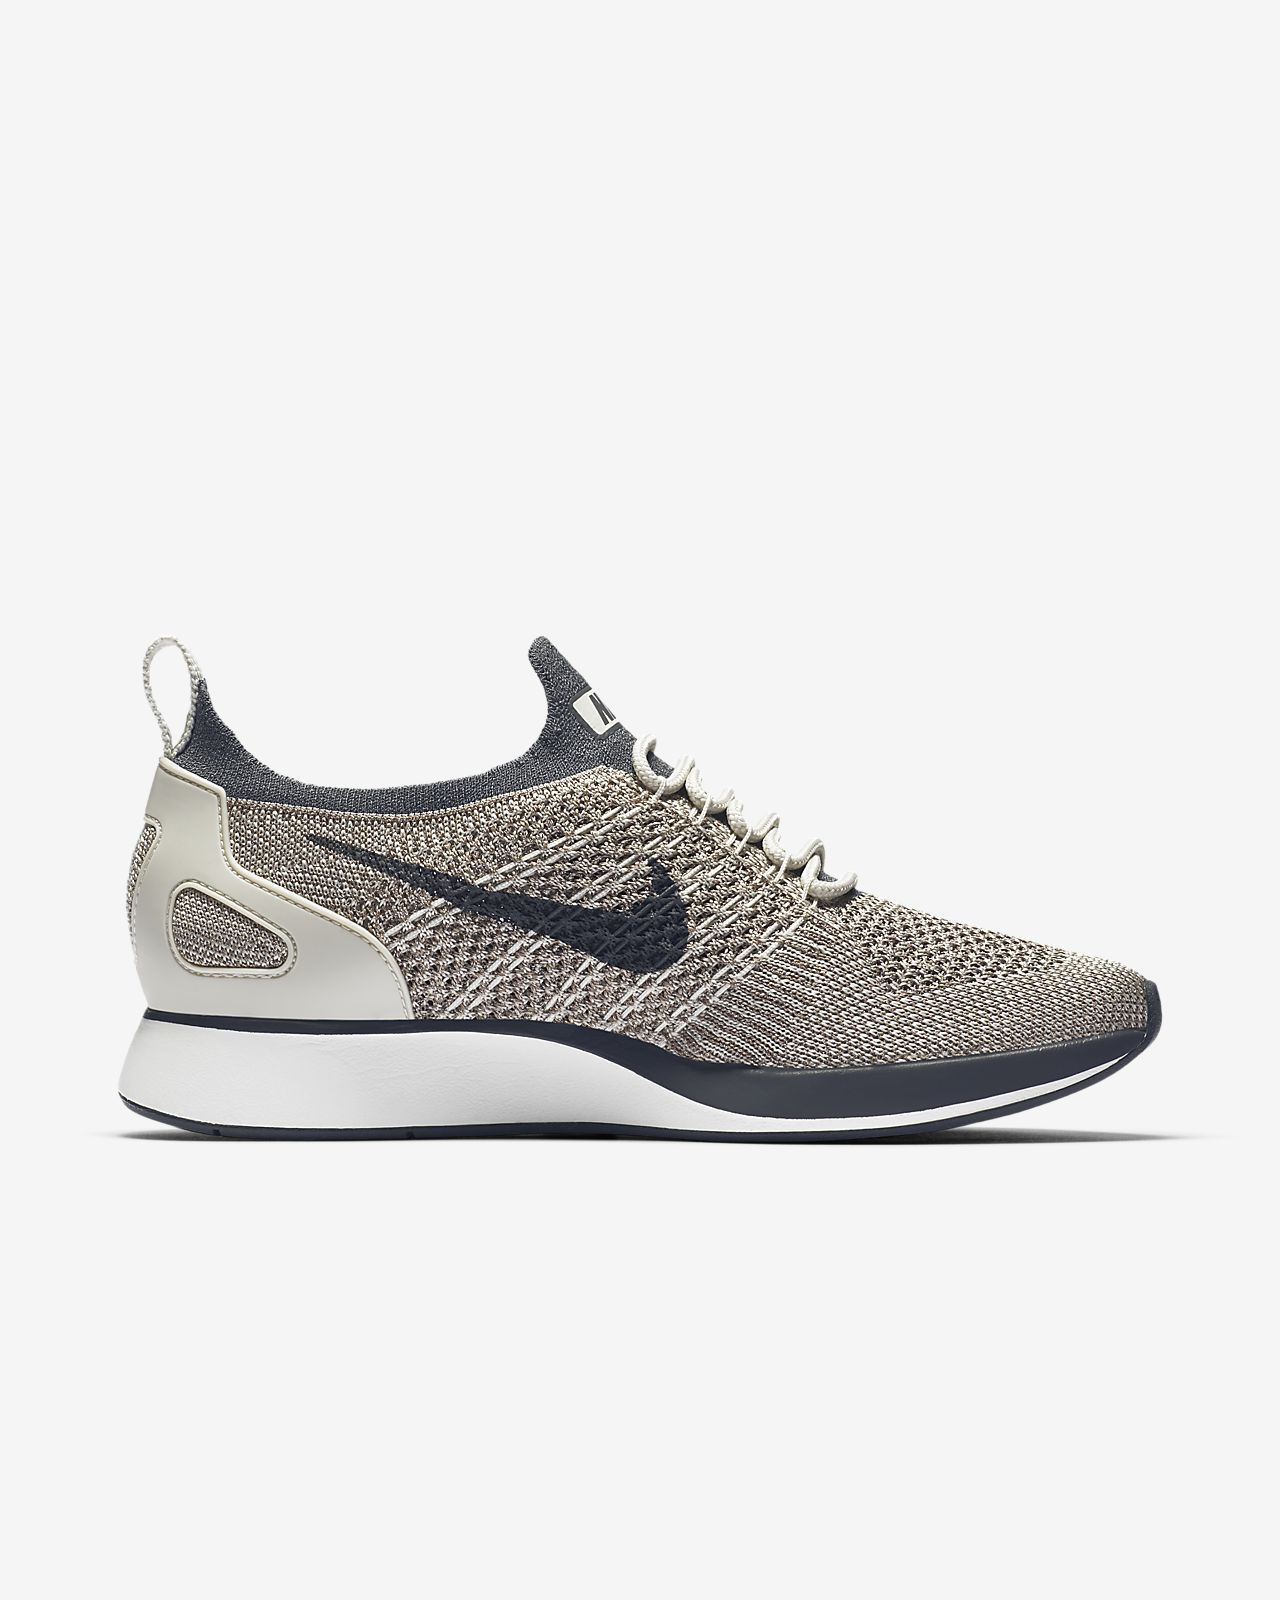 Discount From China Cheap Sale Official Site Nike Women's Air Zoom Mariah Flyknit Racer Trainers bTEFnryDD